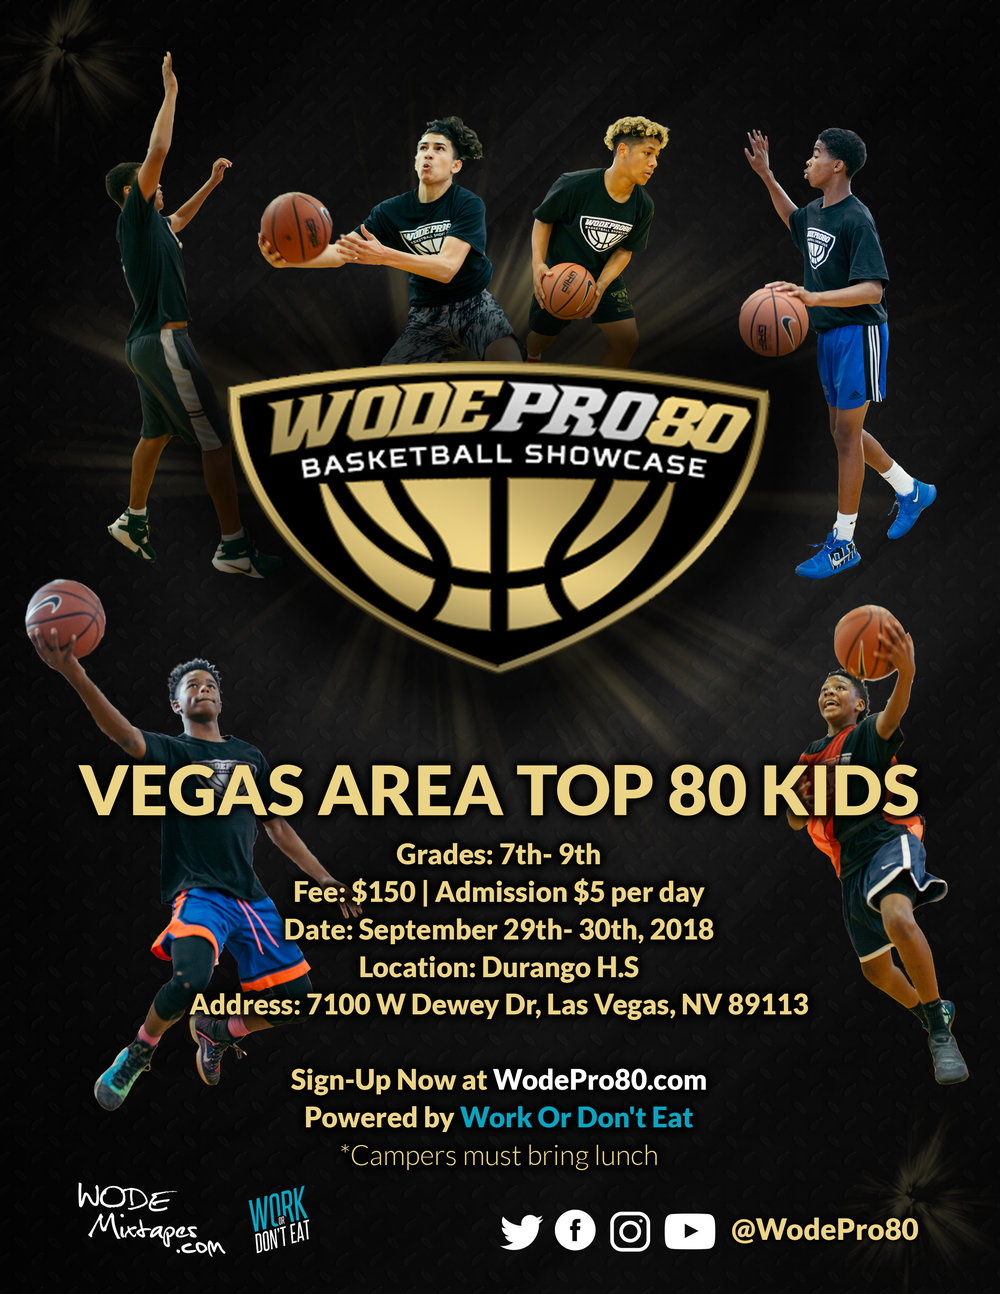 Las Vegas, NV Sep 29th & 30th,2018 Durango H.S   - The WODE Pro 80 Basketball Showcase is designed to provide Las Vegas areas top 7th, 8th and 9th grade youth basketball players the opportunity to train, develop their game and showcase their skills in front of scouts and media.